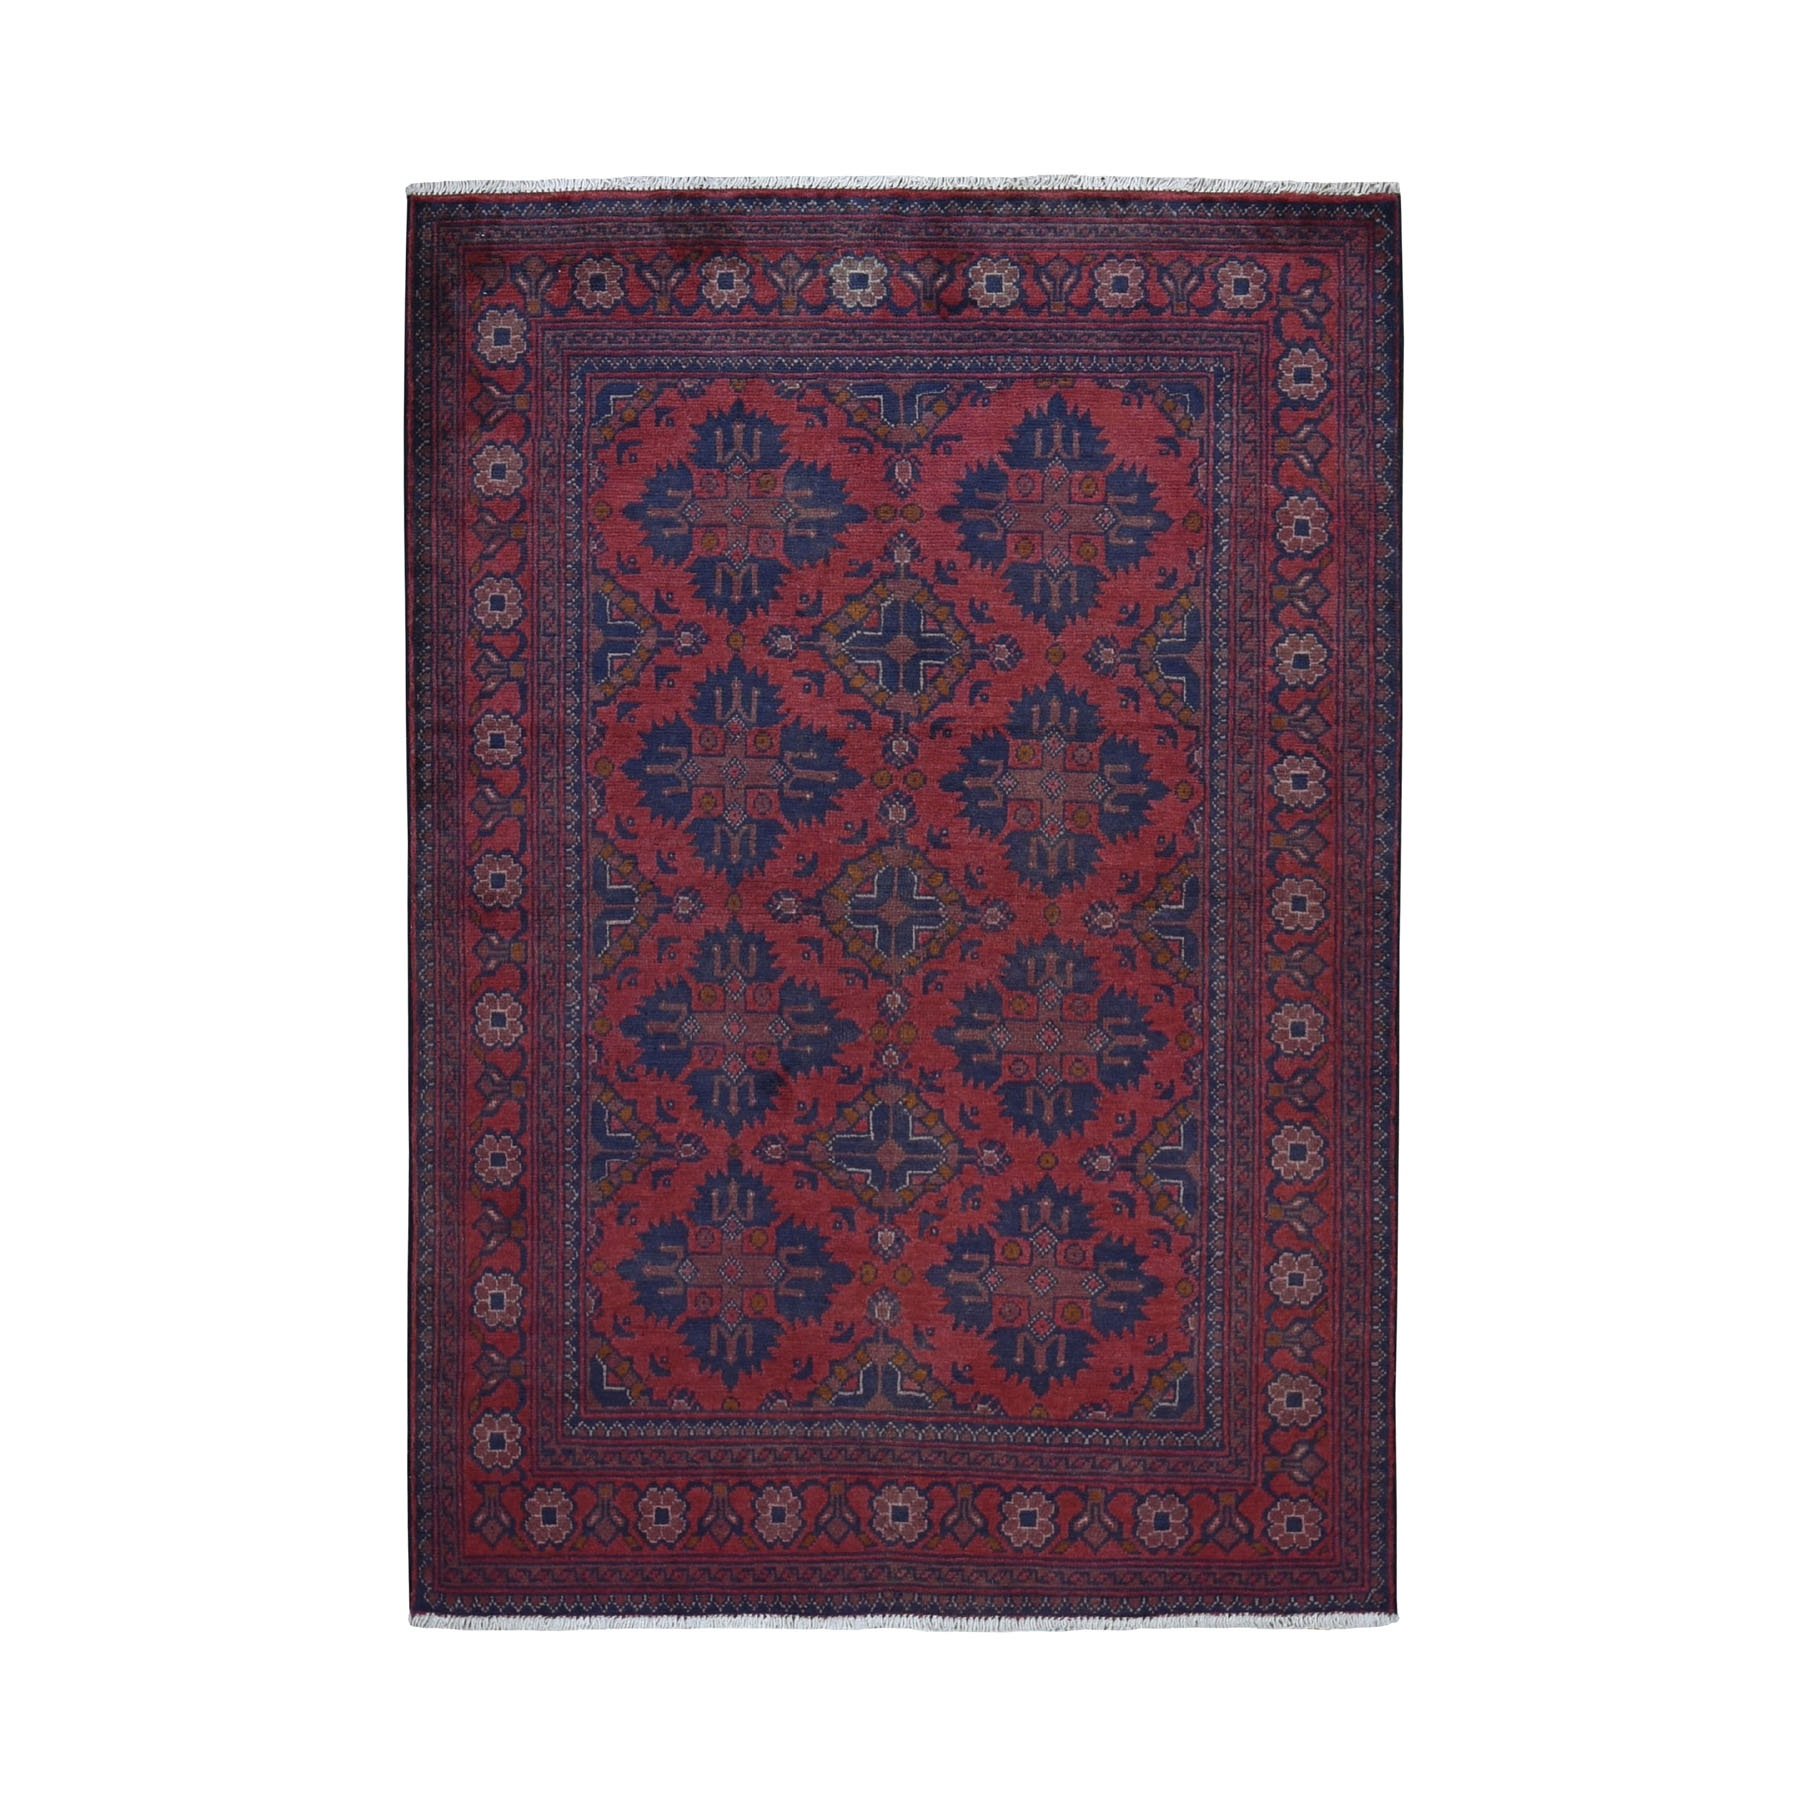 Nomadic And Village Collection Hand Knotted Red Rug No: 0199450